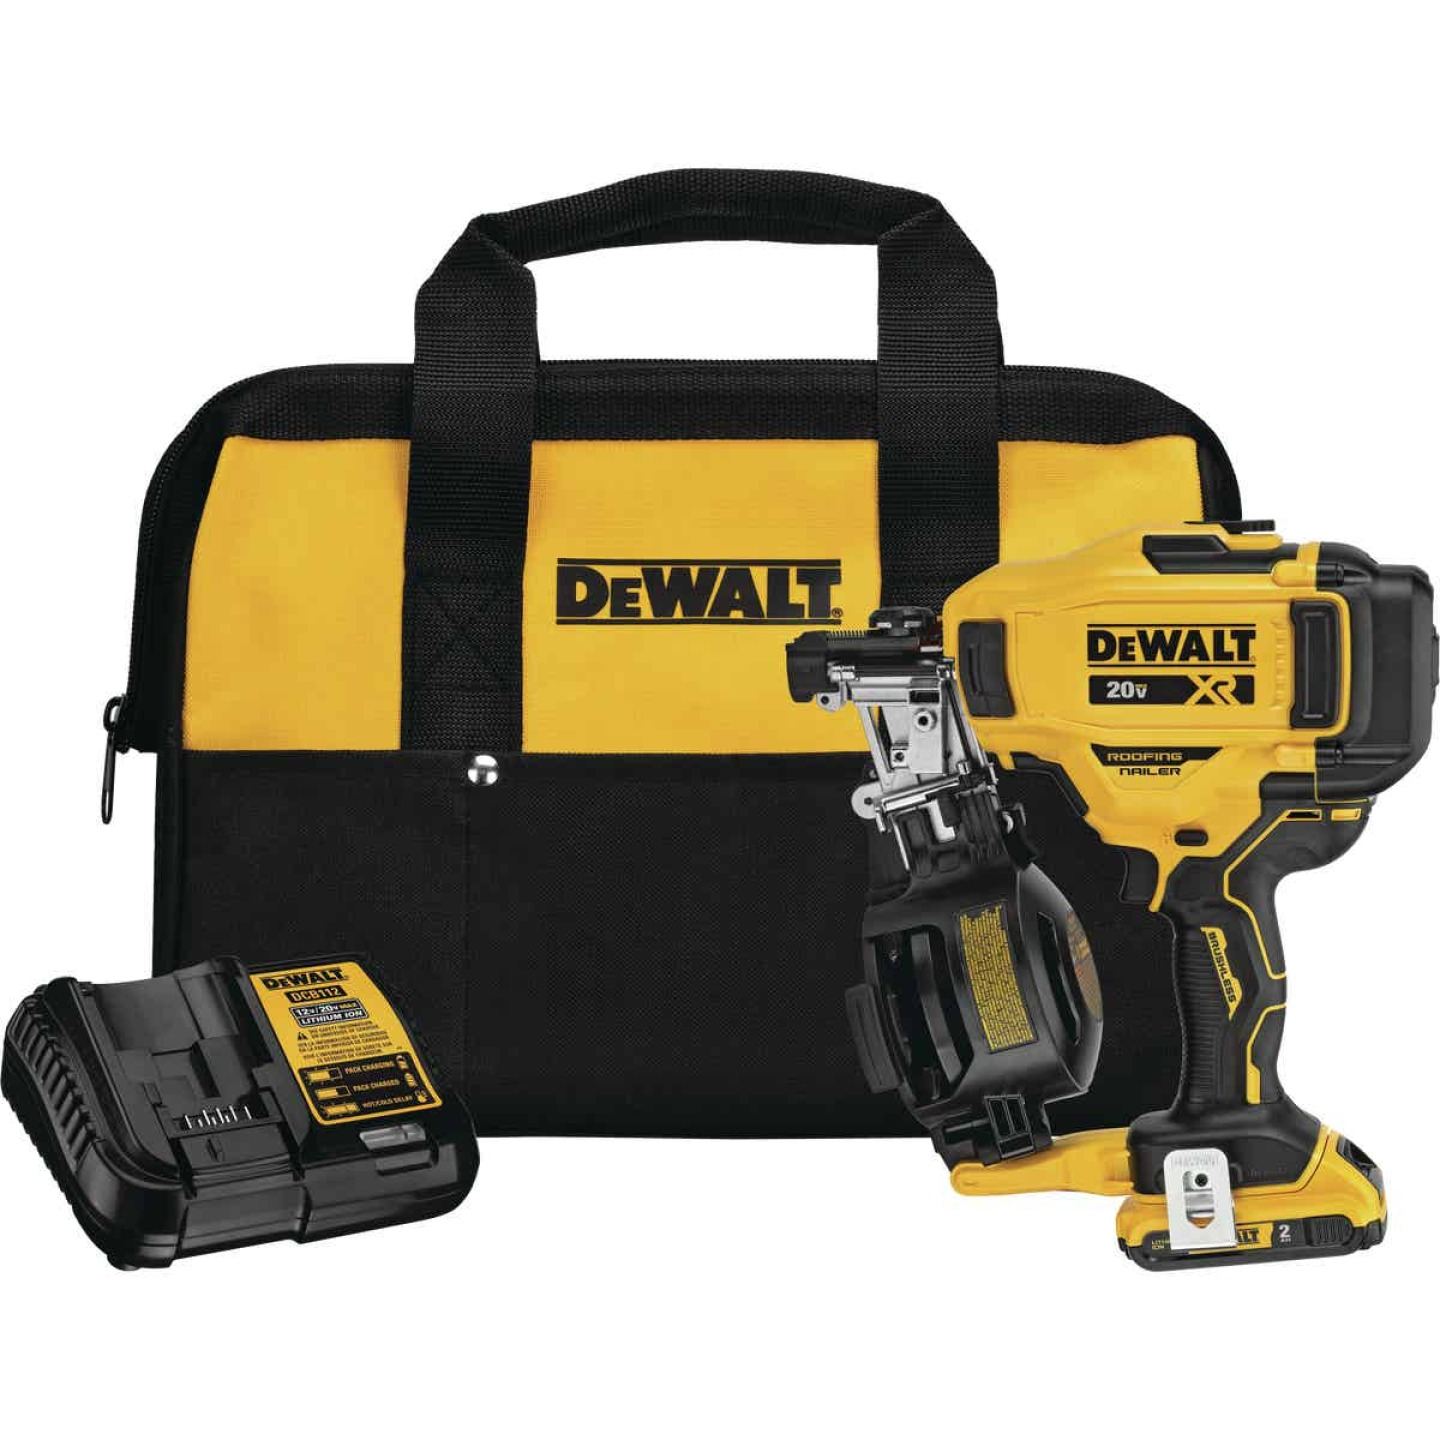 DeWalt 20 Volt MAX Lithium-Ion Brushless 15 Degree 1-3/4 In. Coil Cordless Roofing Nailer Kit Image 1